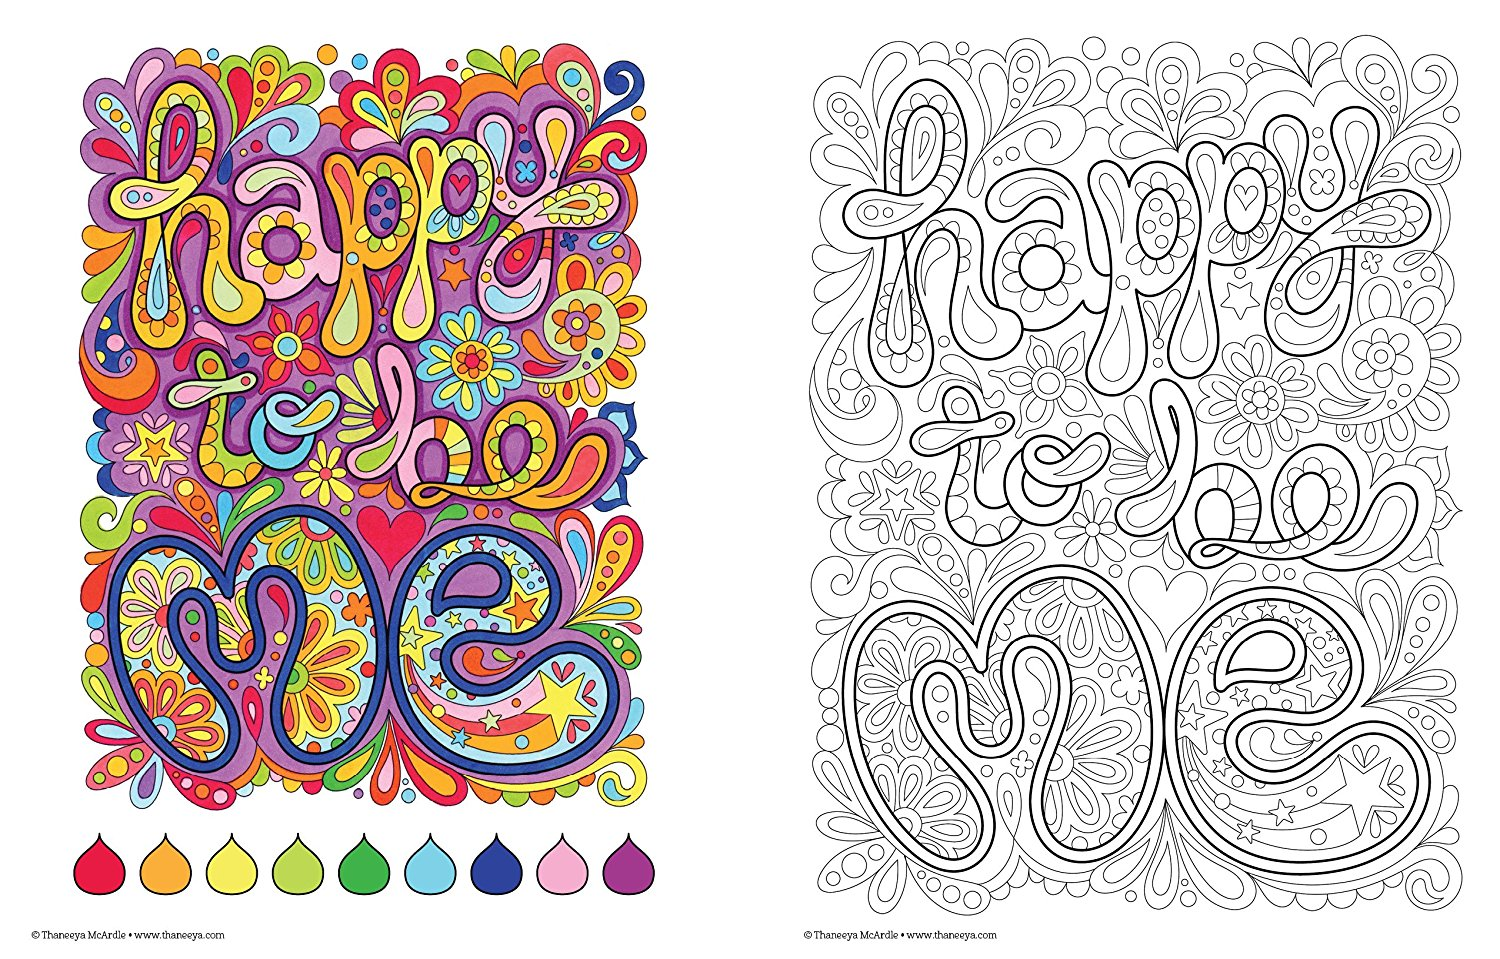 Good Vibes Coloring Book (Coloring Is Fun) - Adult Coloring Book Club